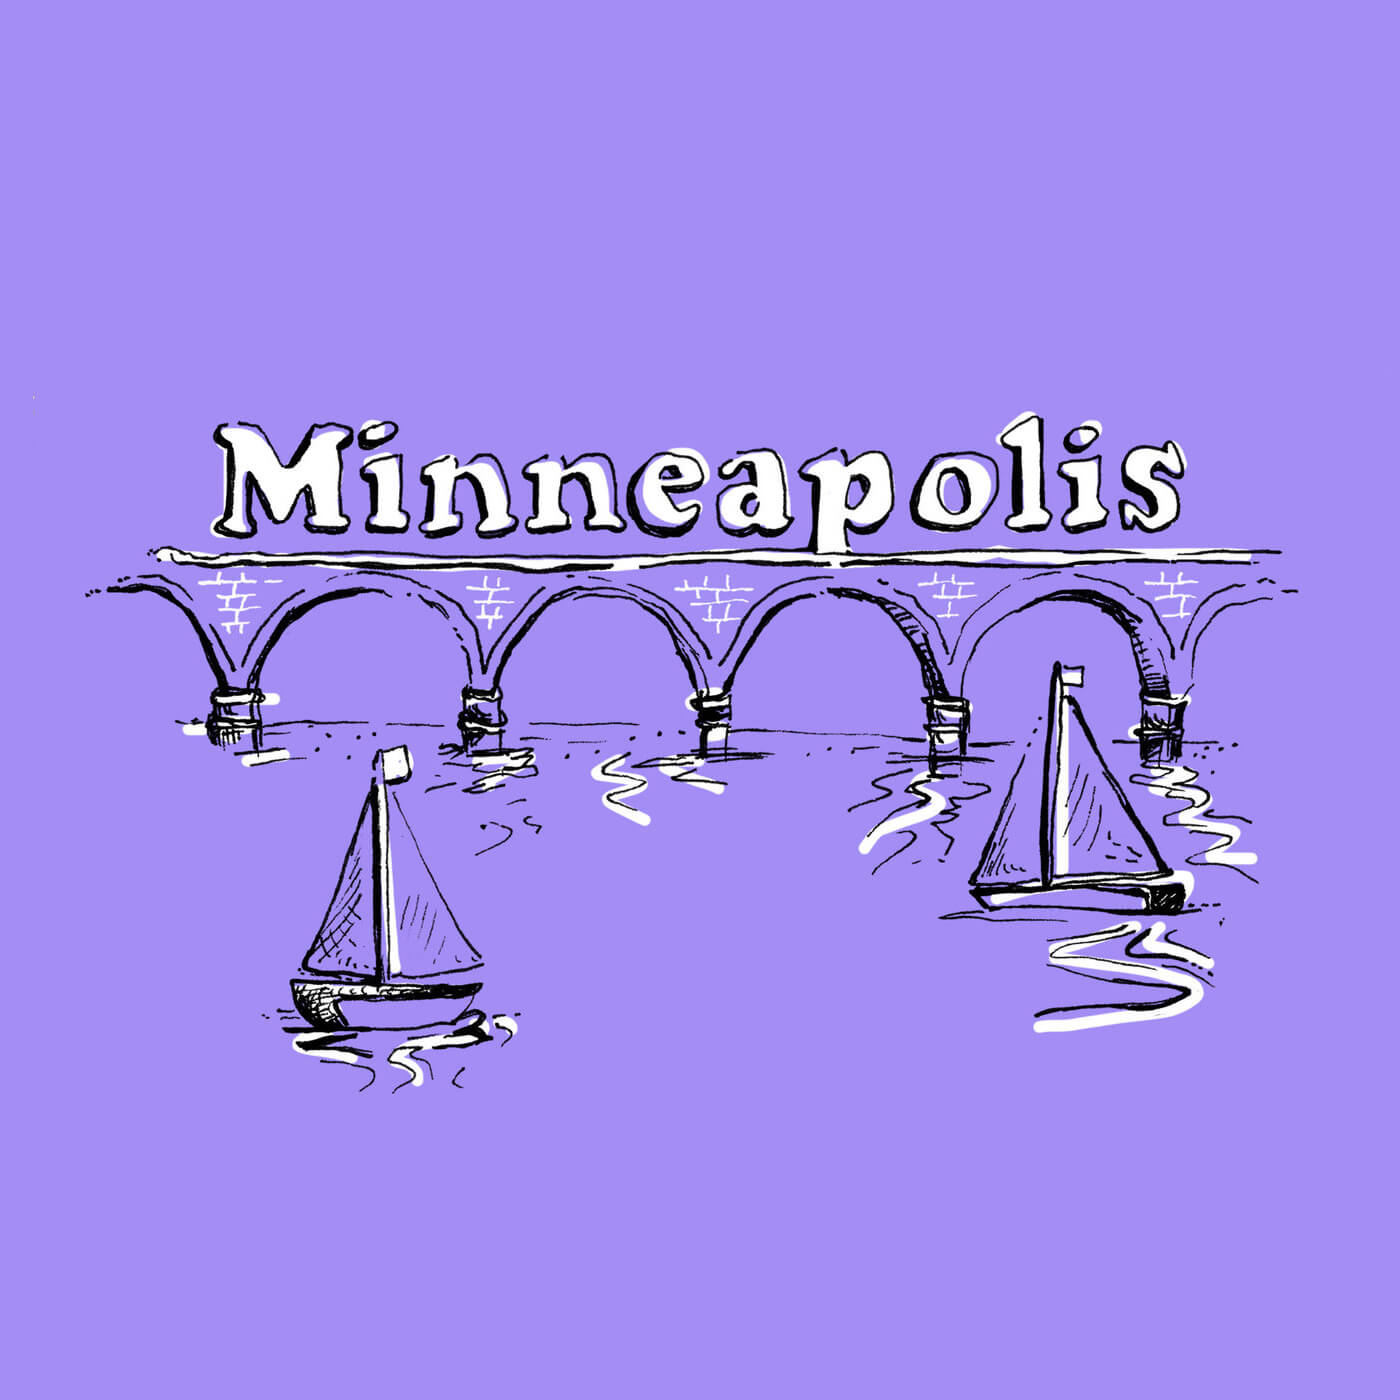 Neenah Presents Minneapolis - An illustrated guide to the land of ten thousand lakes, featuring hand-drawn neighborhood maps around Minneapolis.